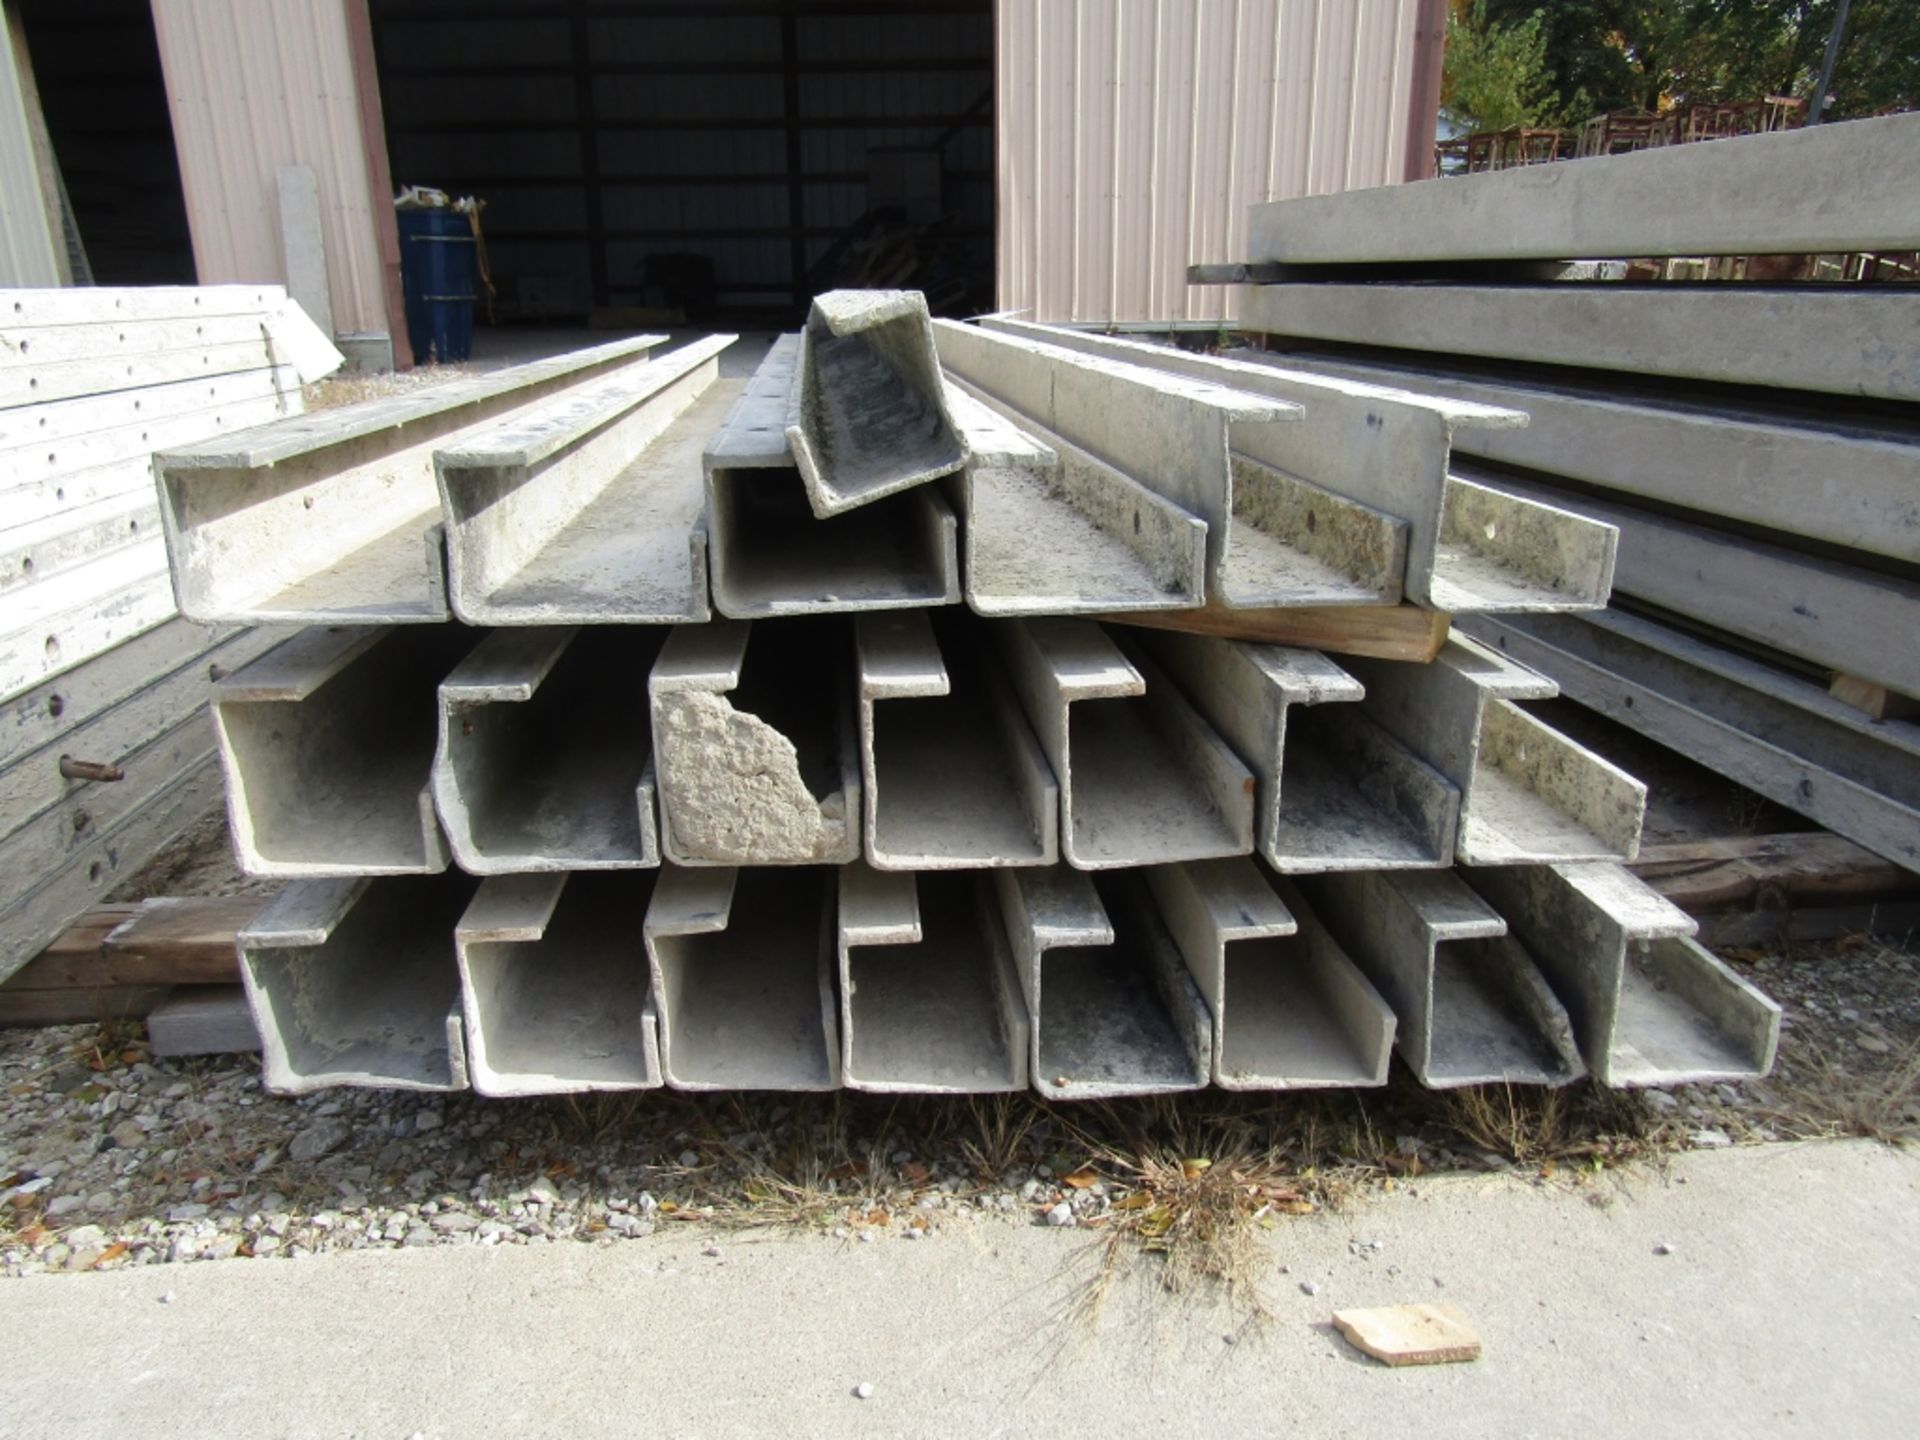 """(17) 5""""x5""""x8' & (4) 6""""x4""""x8' Durand Concrete Forms, Inside Corners, Smooth 6-12 Hole Pattern, Full - Image 2 of 3"""